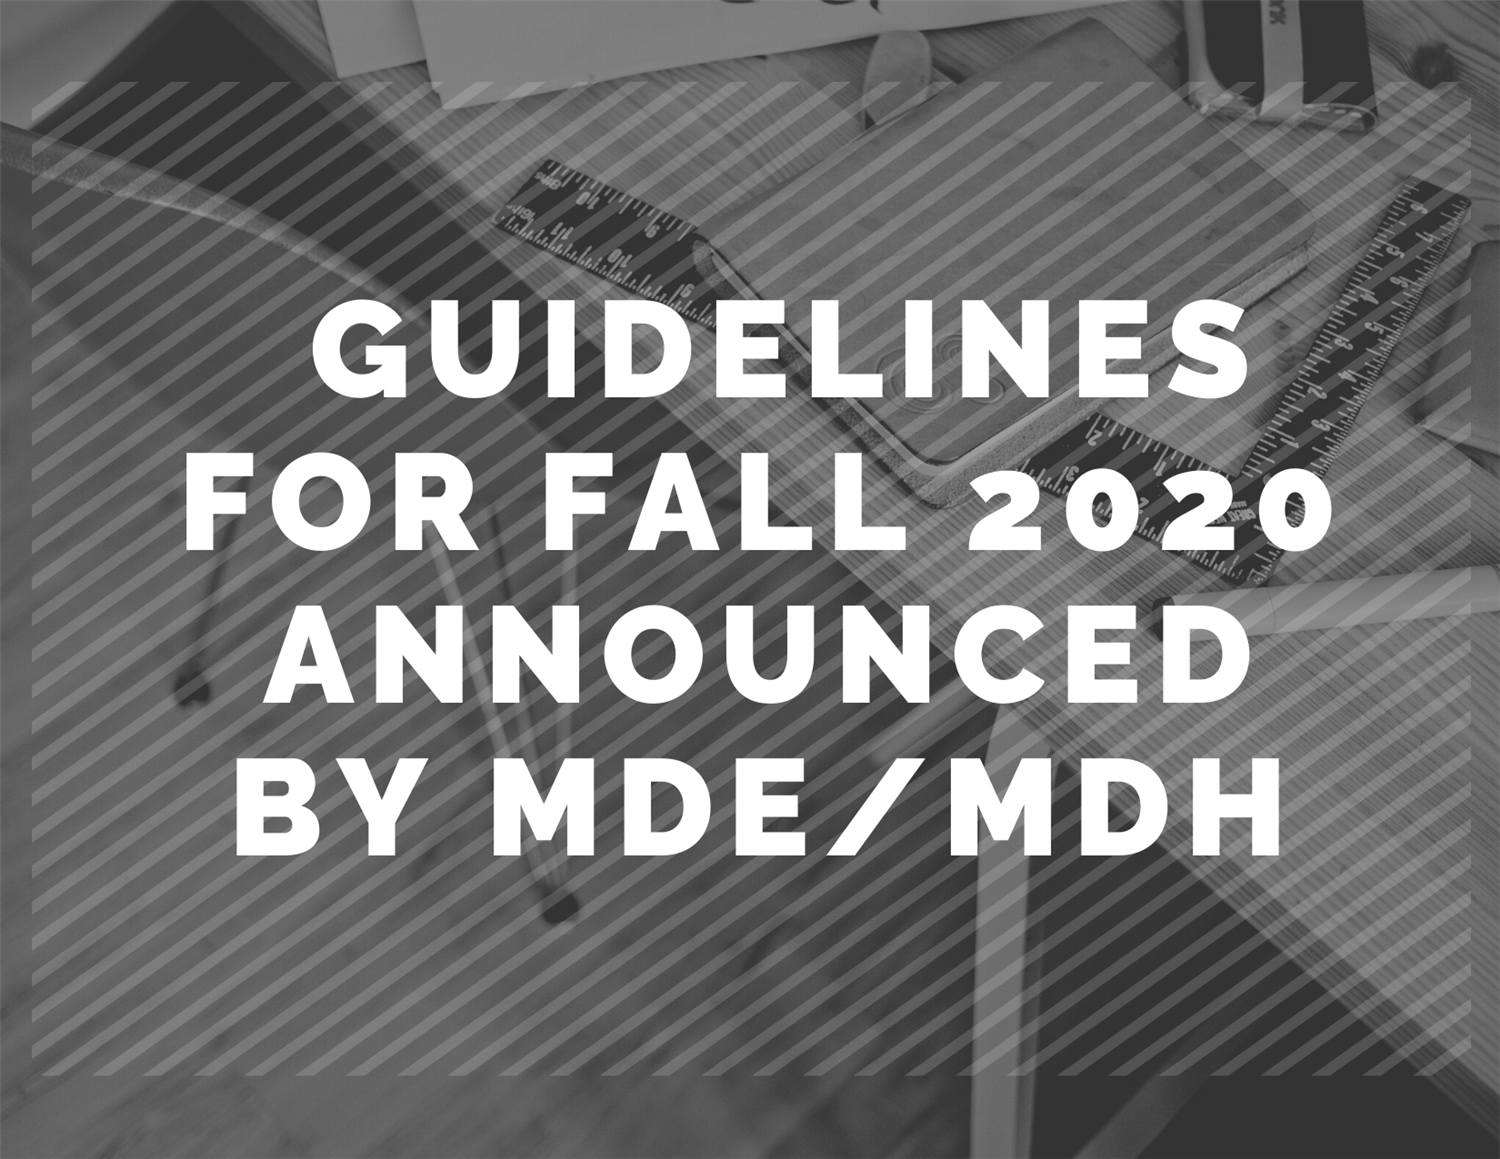 Guidance Documents for Fall 2020 School Planning